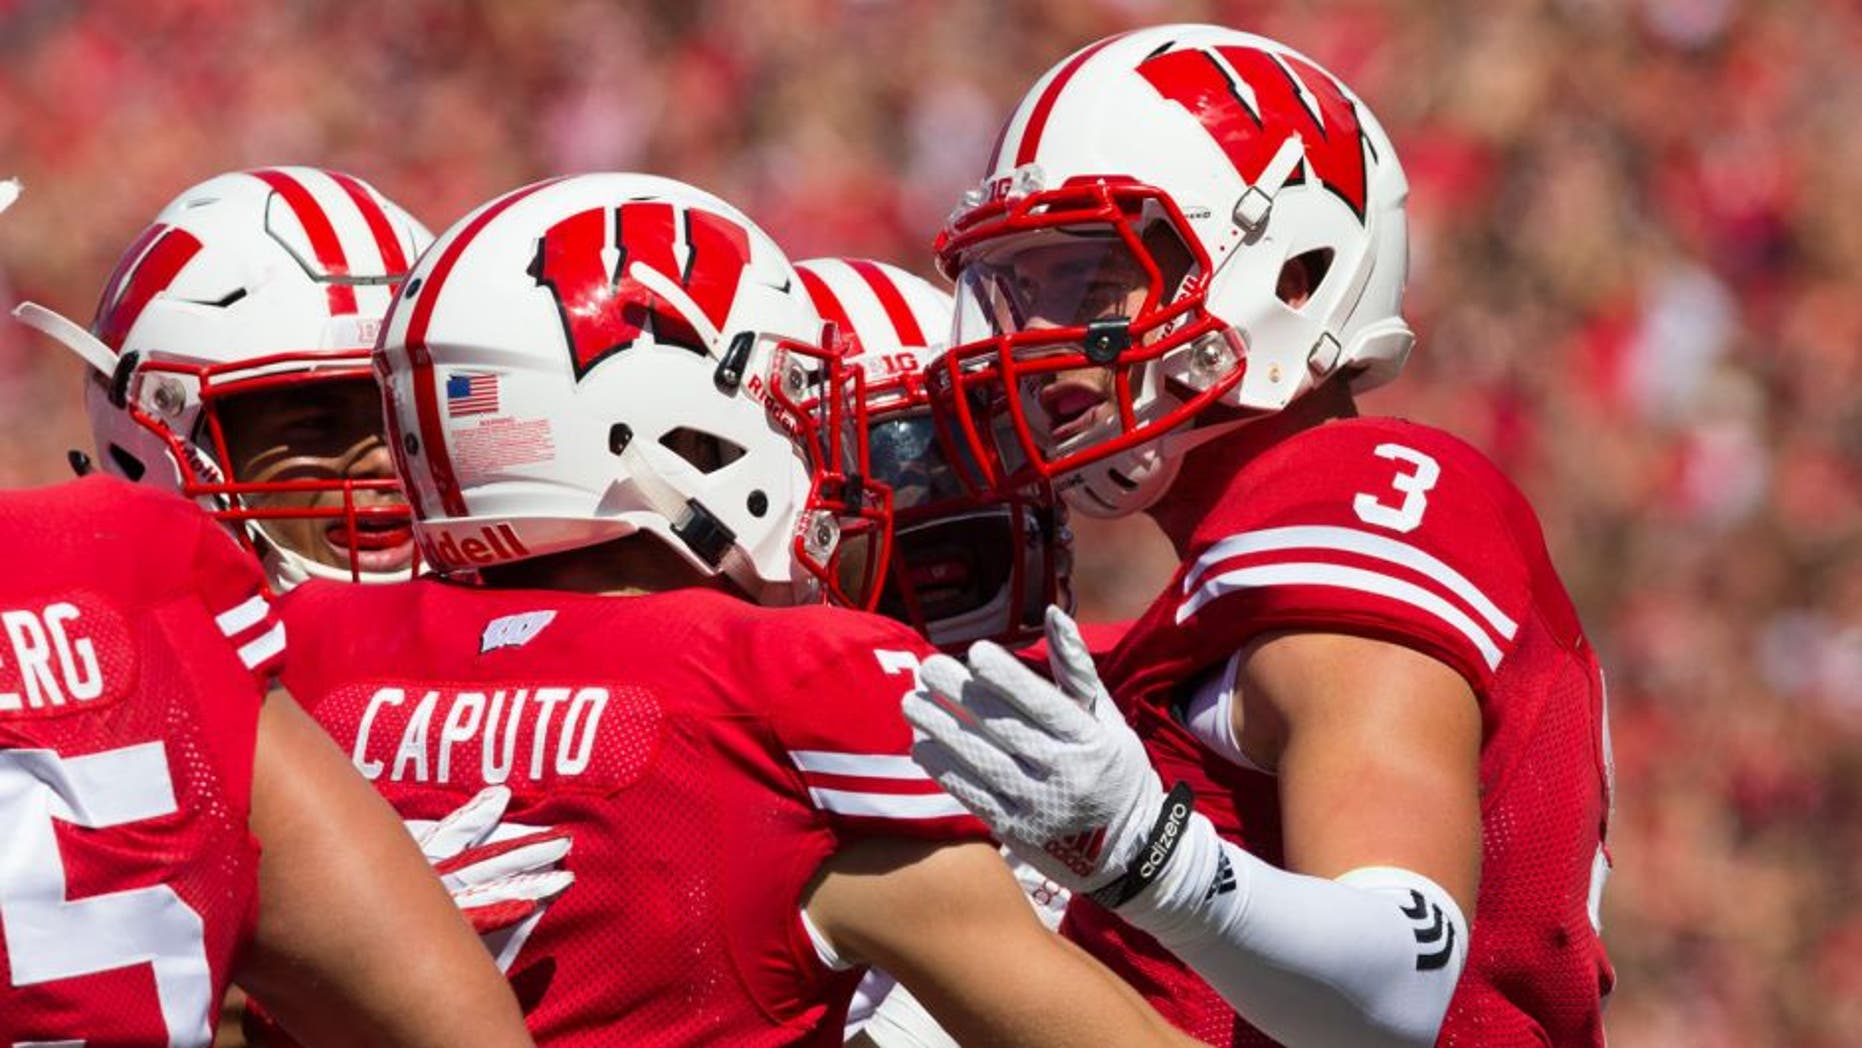 Sep 12, 2015; Madison, WI, USA; Wisconsin Badgers safety Tanner McEvoy (3) celebrates following an interception during the second quarter against the Miami (Ohio) RedHawks at Camp Randall Stadium. Mandatory Credit: Jeff Hanisch-USA TODAY Sports